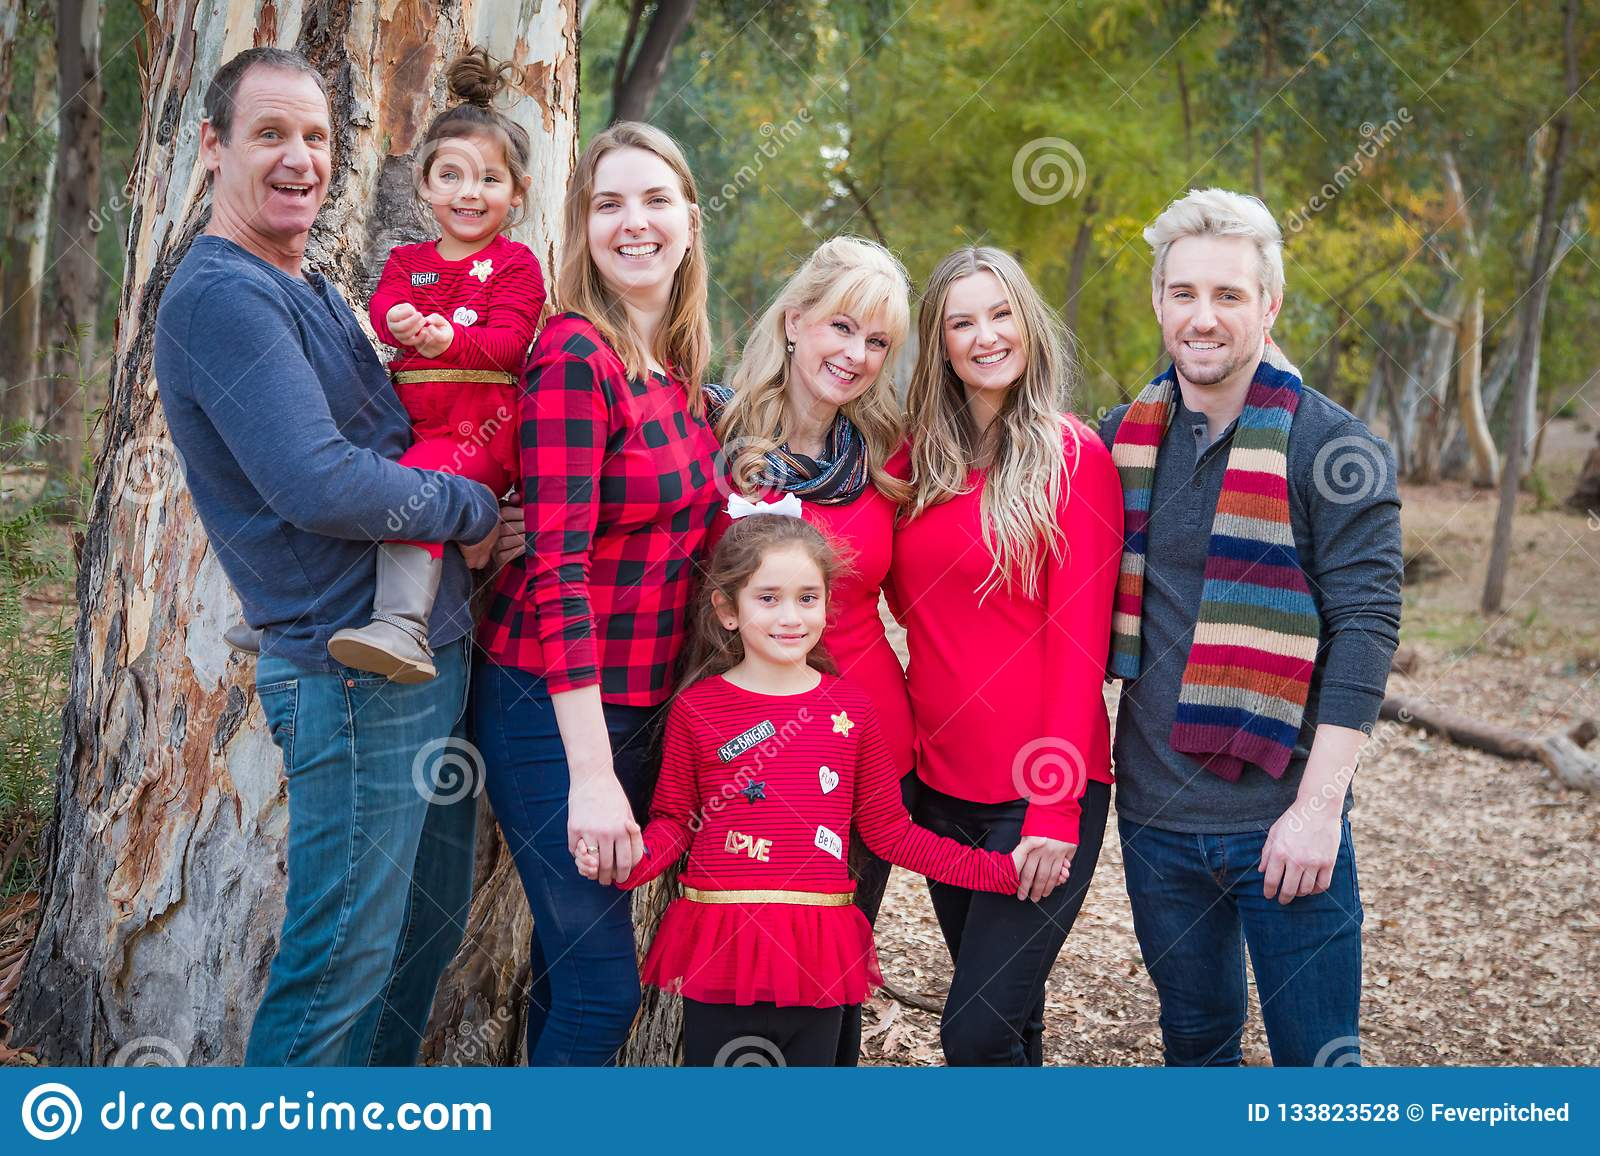 Attractive Multigenerational Mixed Race Family Portrait Outdoors